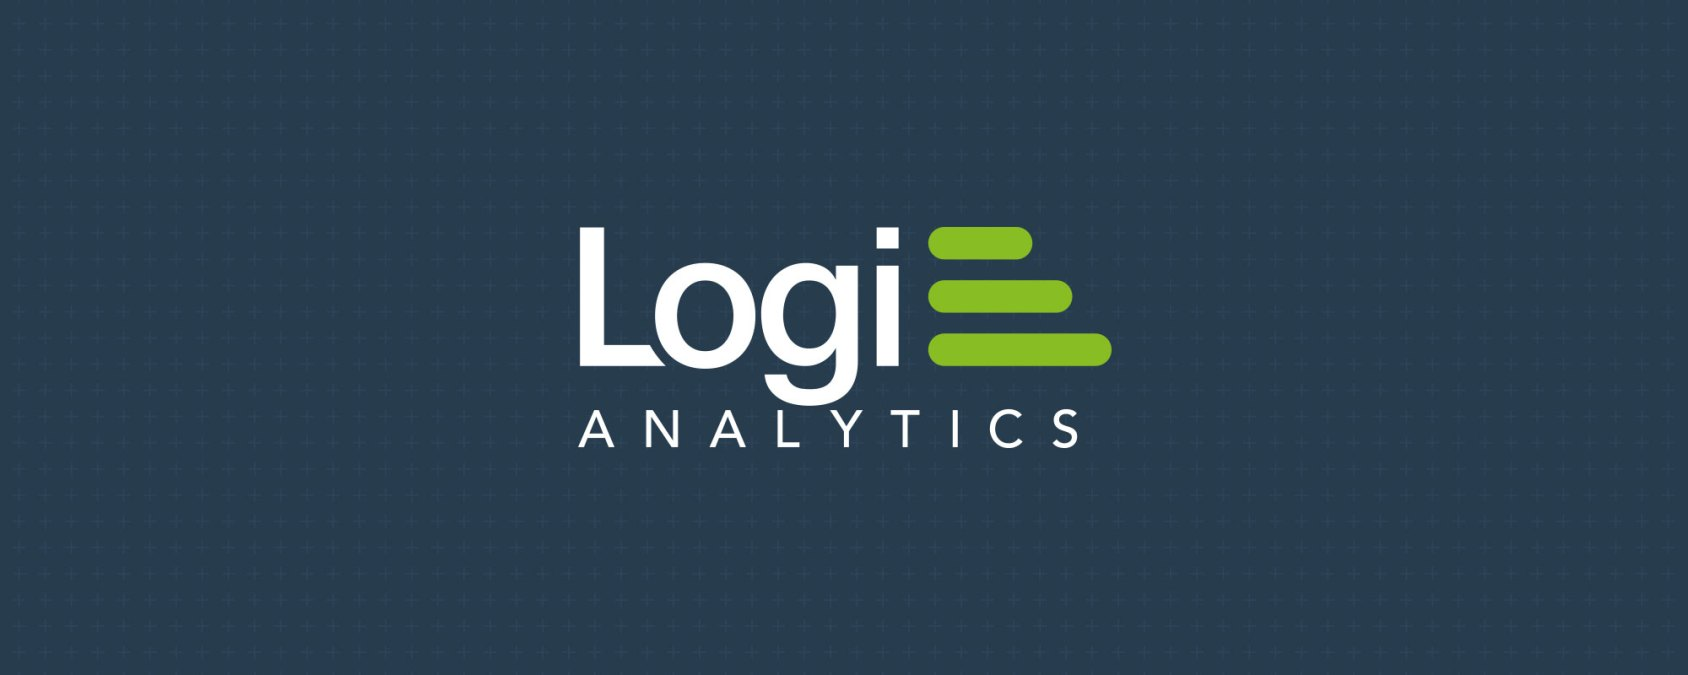 Growing Goodwill with the Logi Analytics Mailer